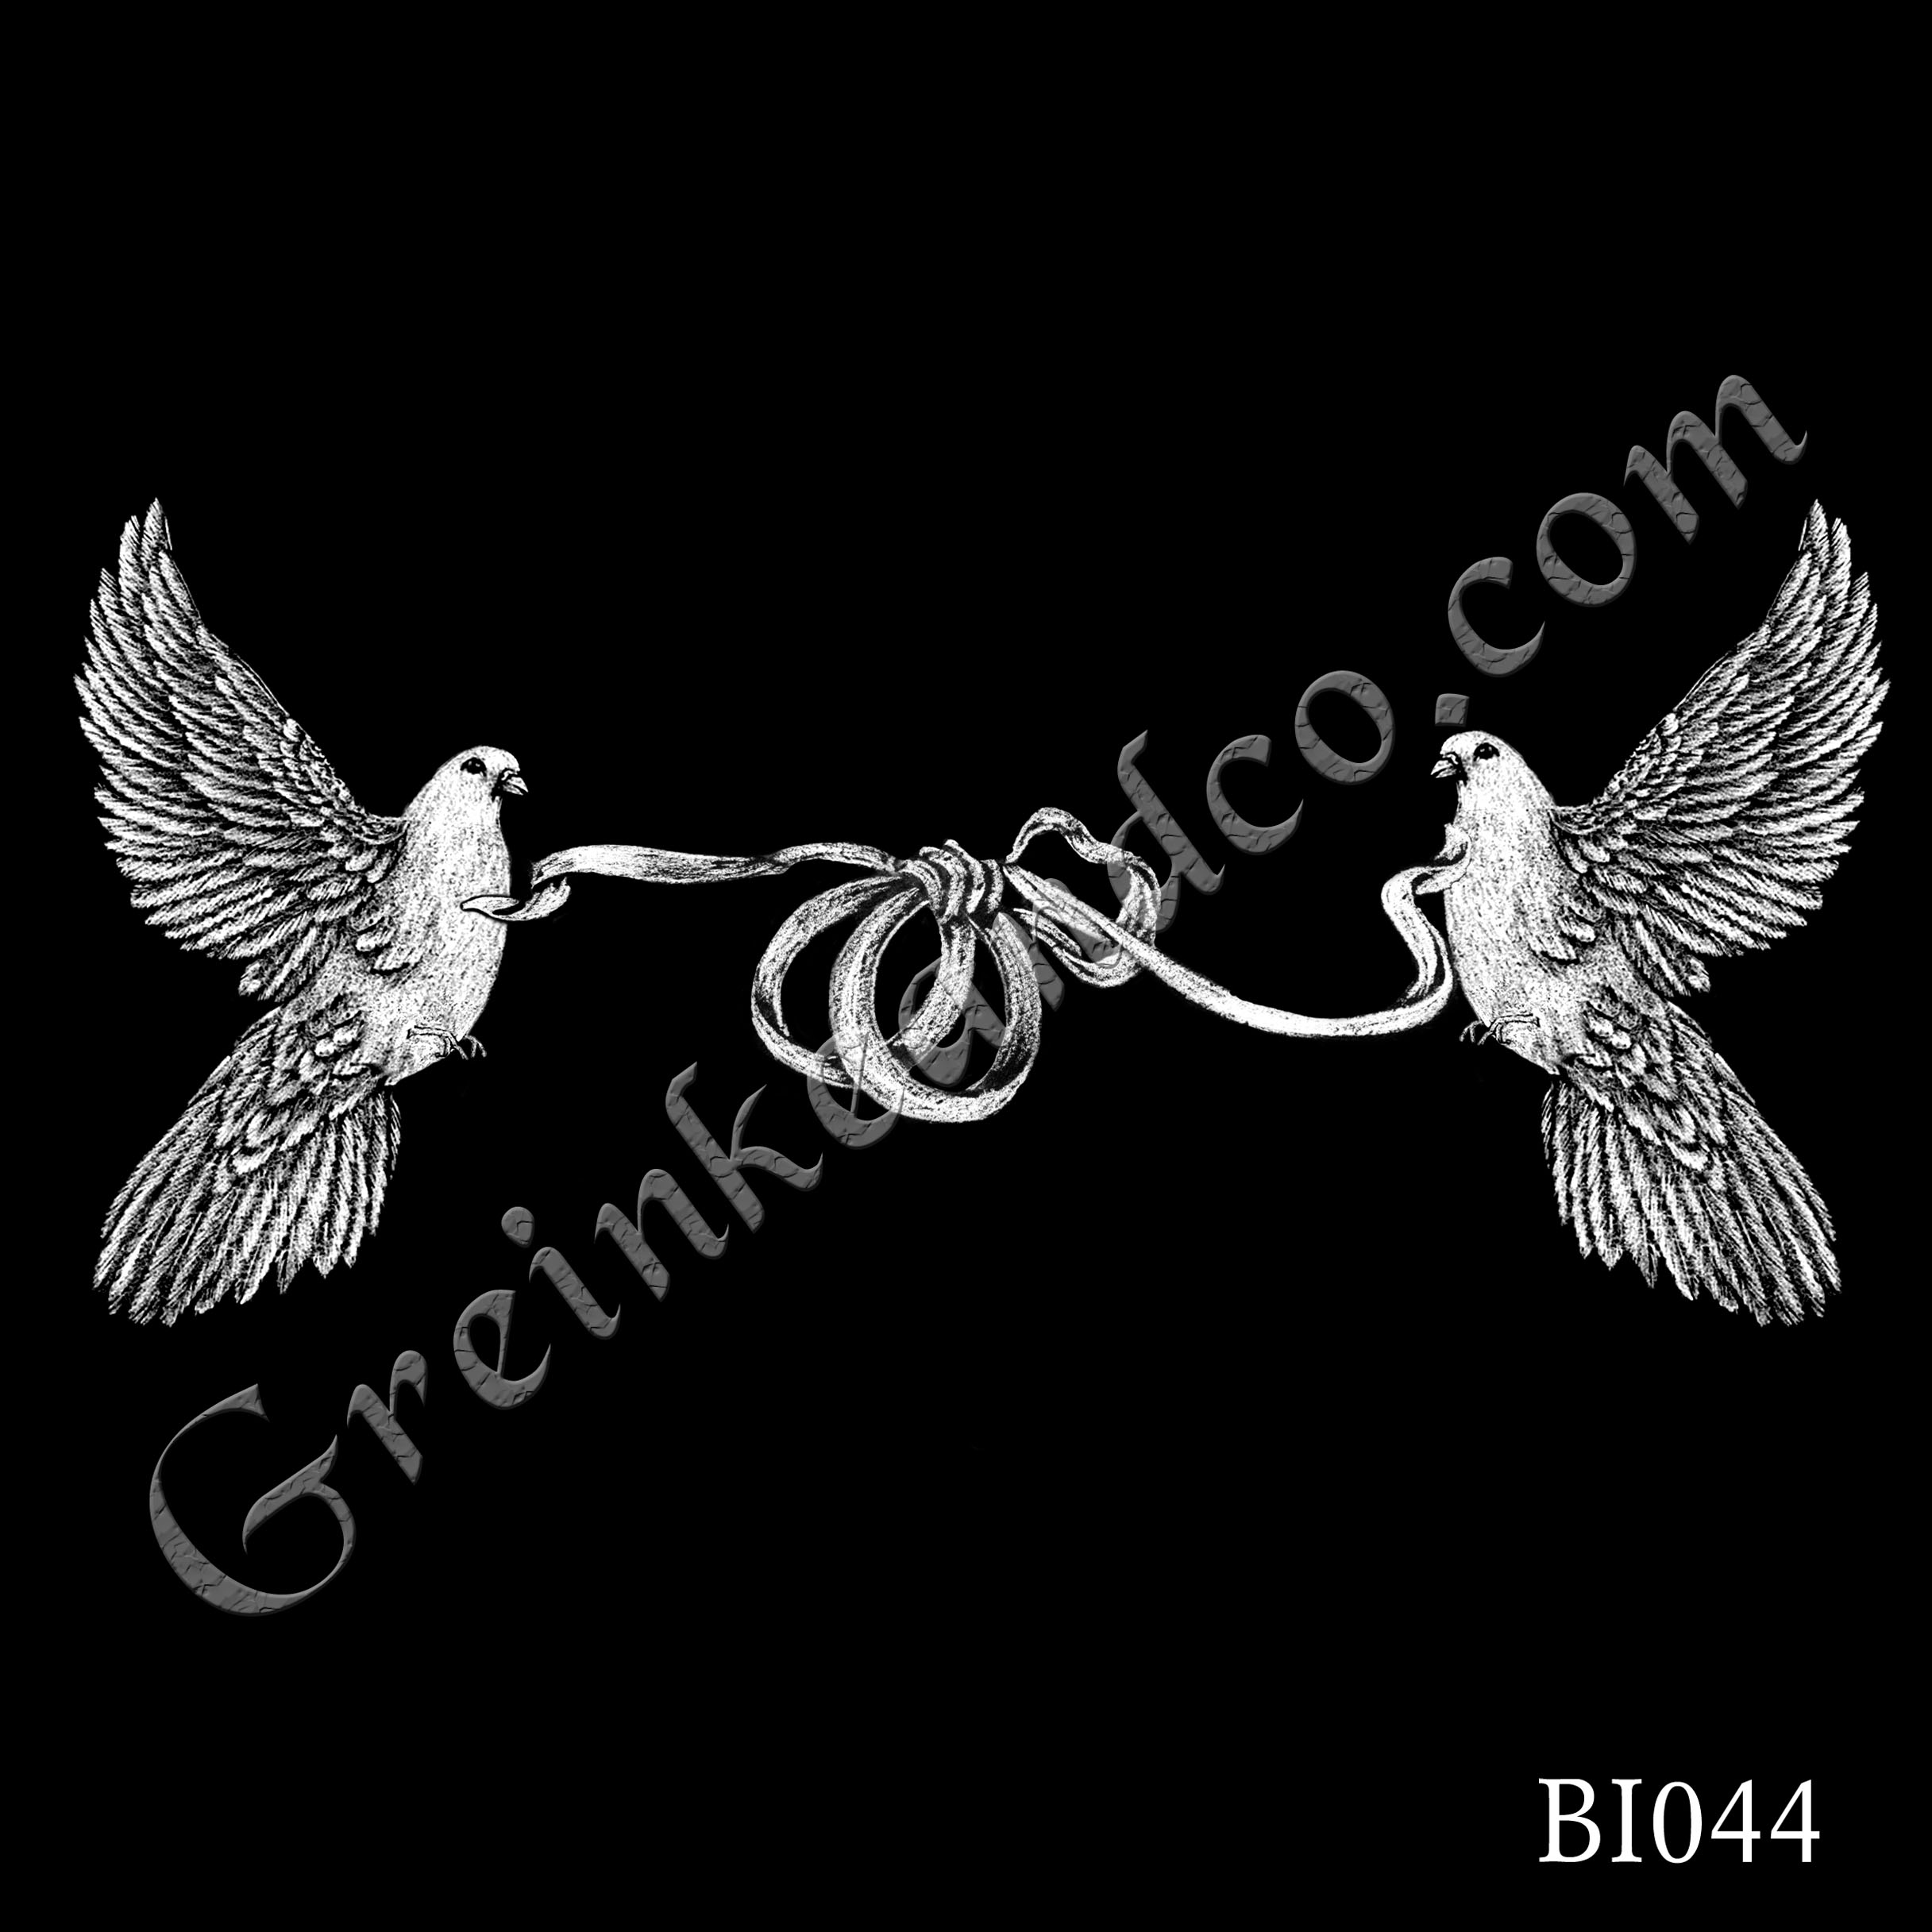 BI044 - Doves & Wedding Rings